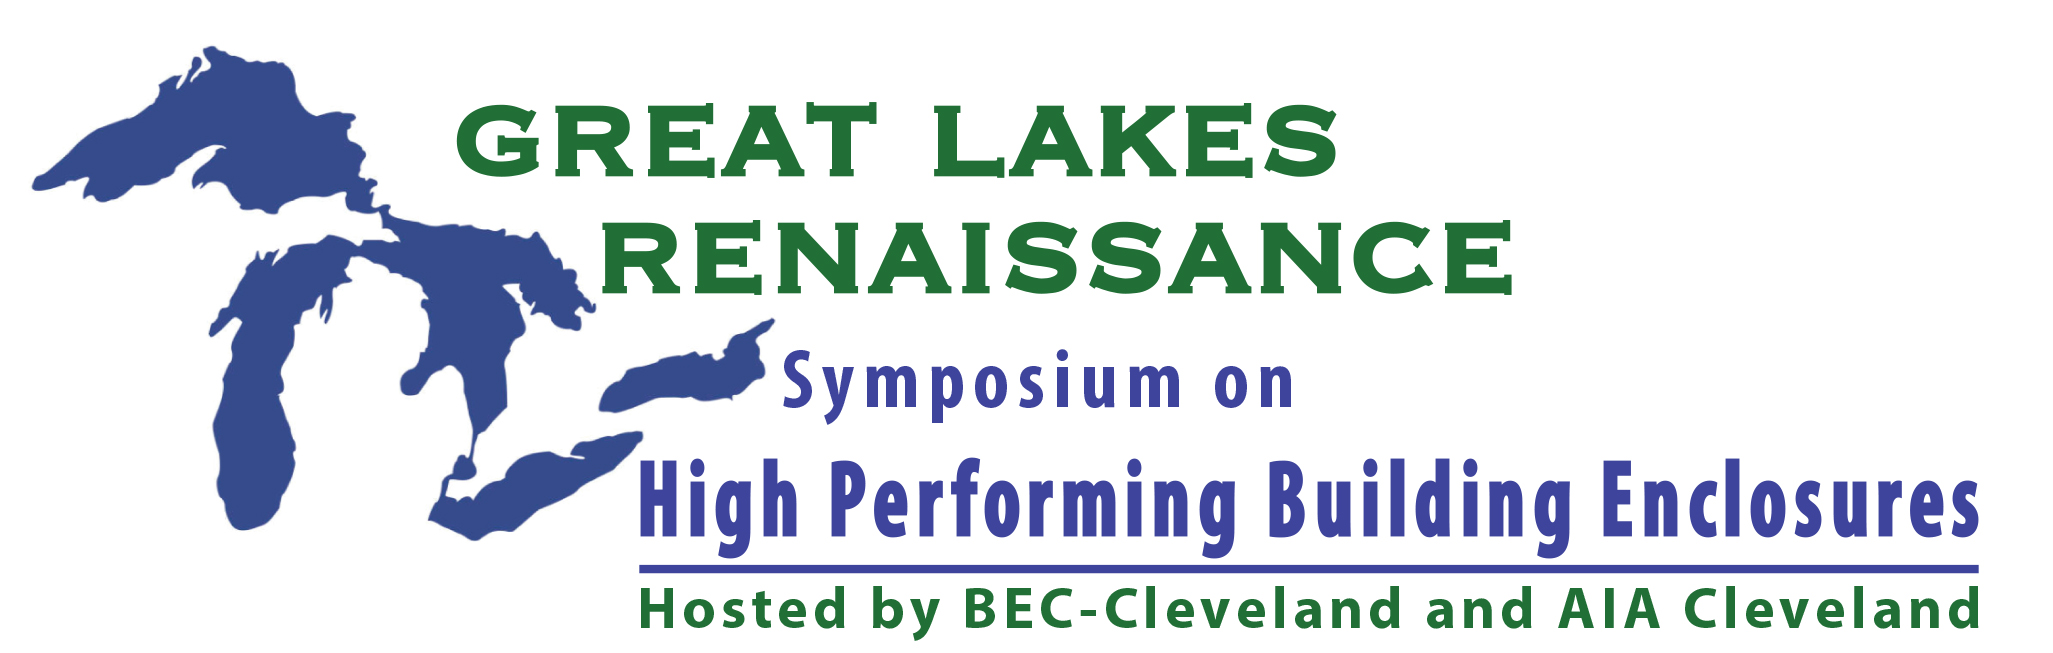 Great Lakes Renaissance Logo Design